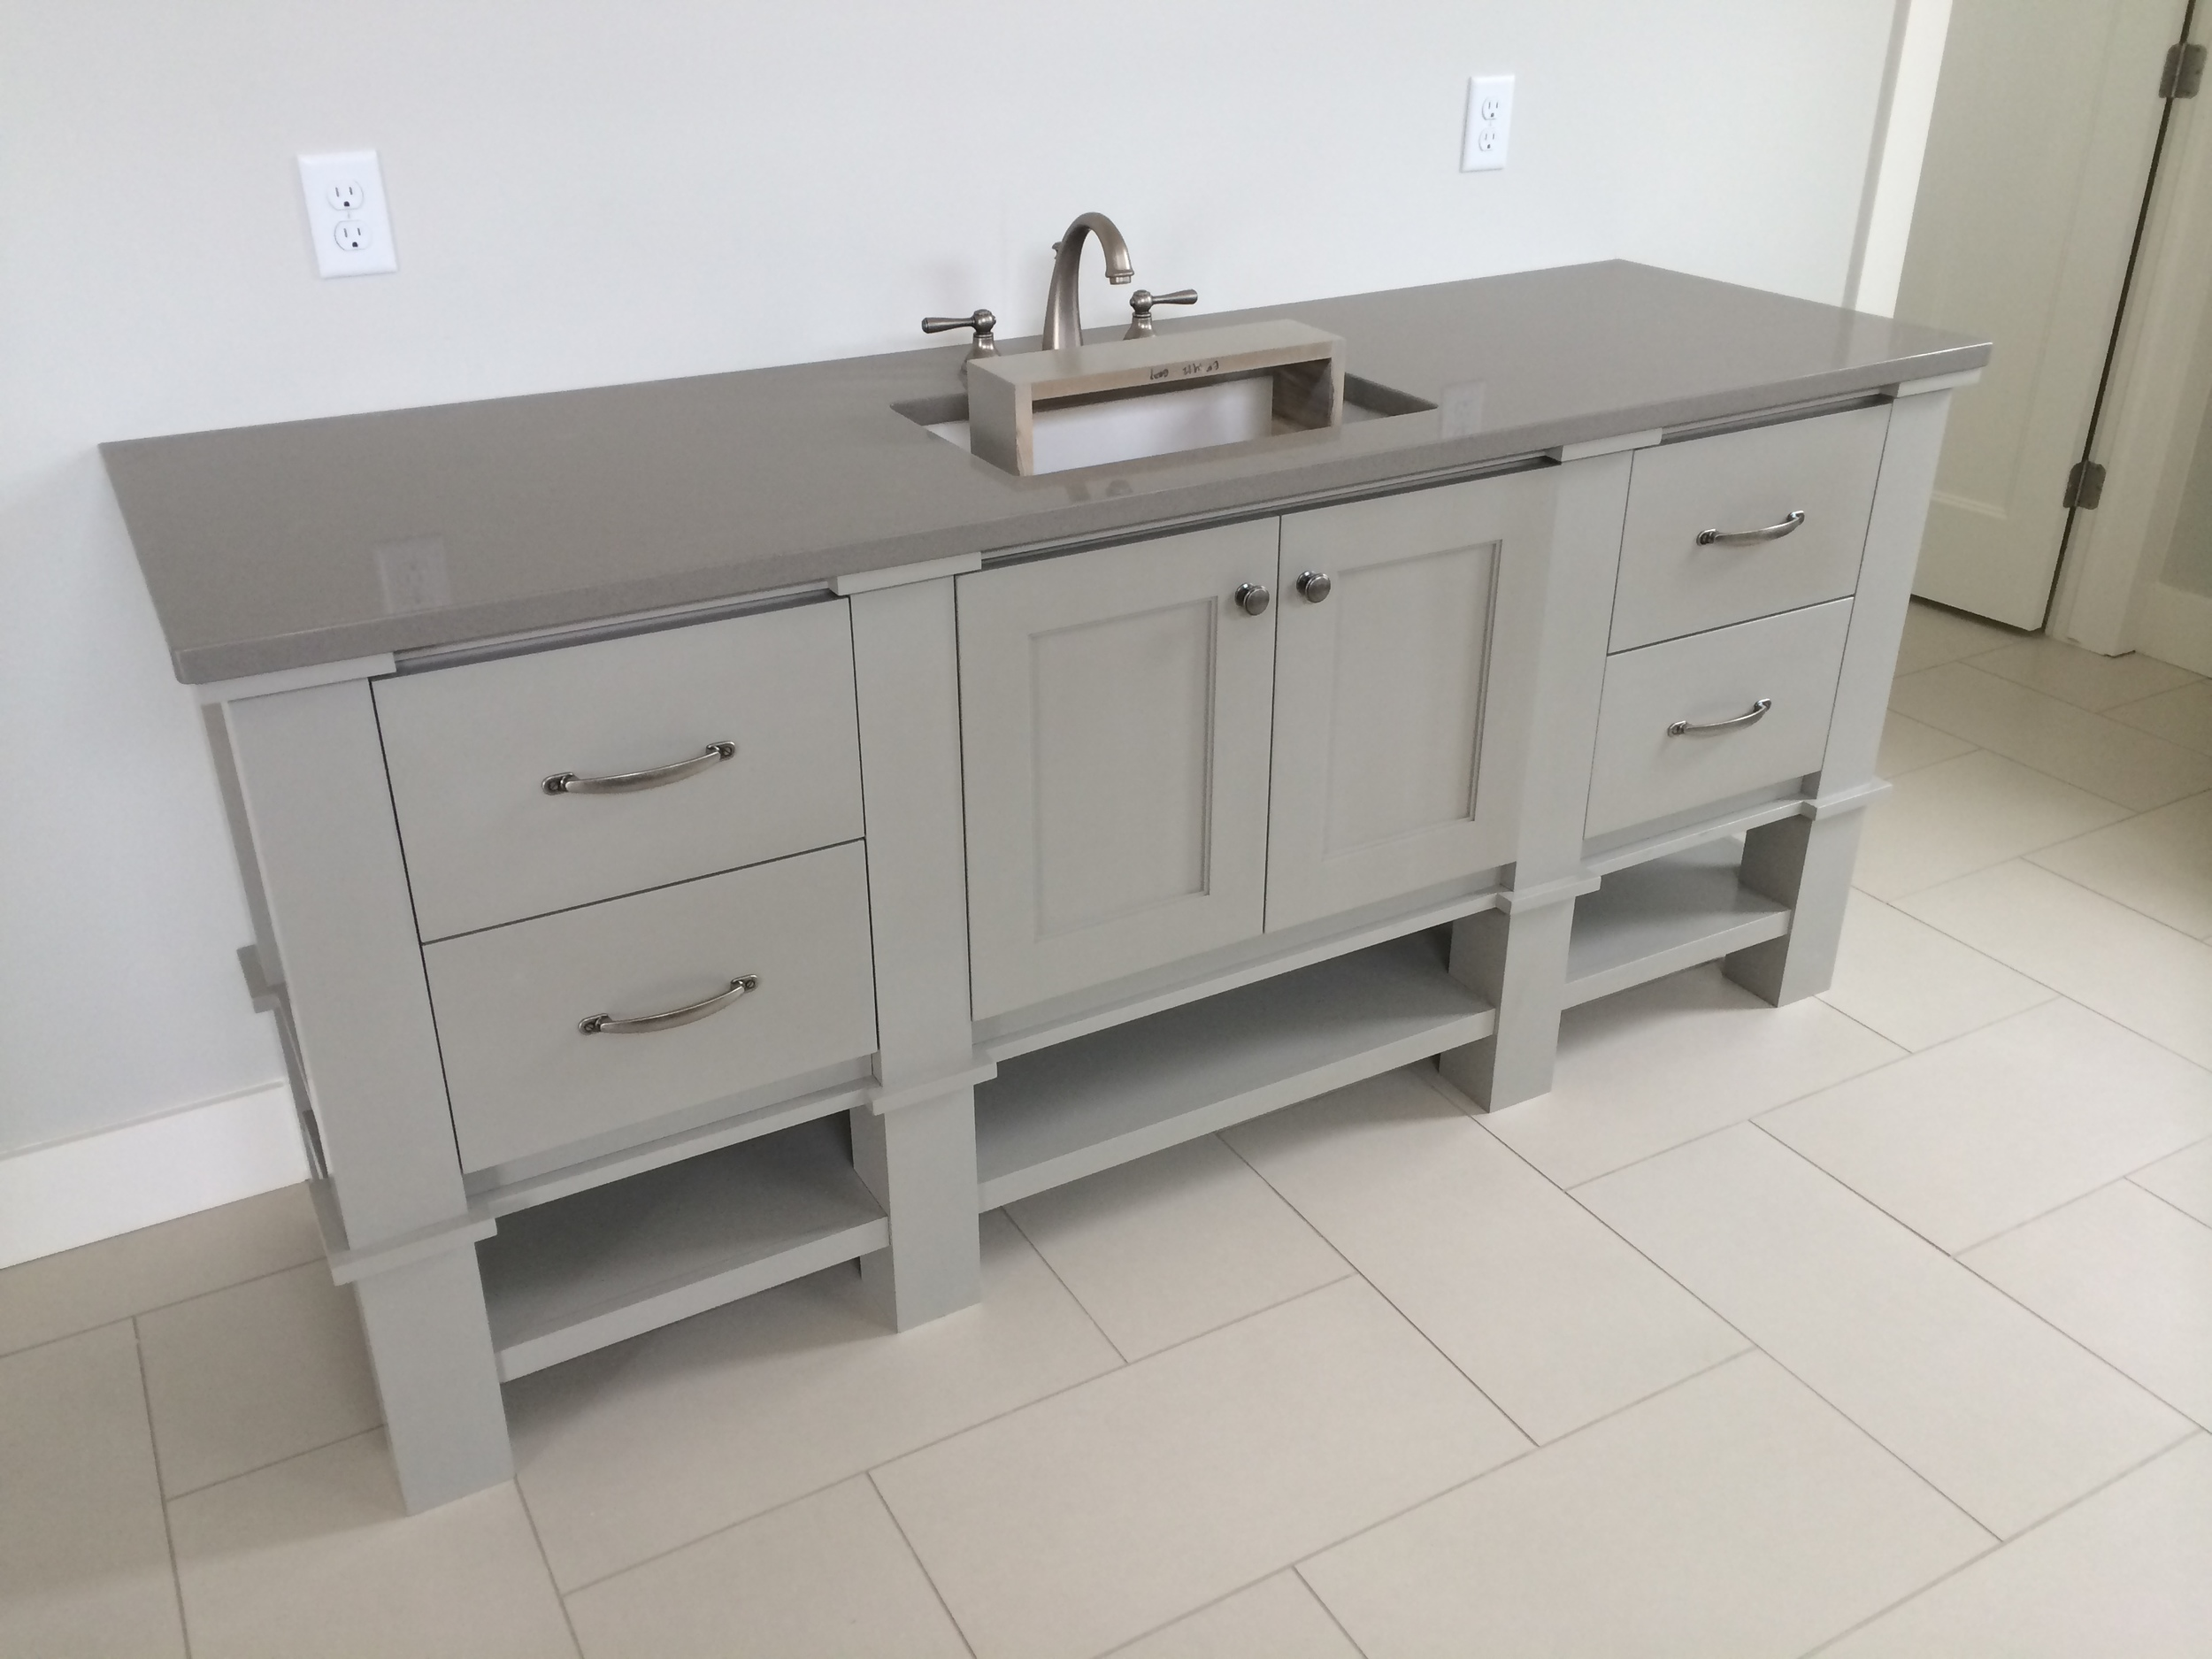 Multiple choices were made in this custom designed vanity including the obvious ones such as paint color, countertop, hardware, sink and faucet. The finer details include the height, width and depth of each drawer and door within the cabinet; the species of wood; the amount of open space and thickness of the wood for the open shelving; the door style and profile; and the decorative post detail.